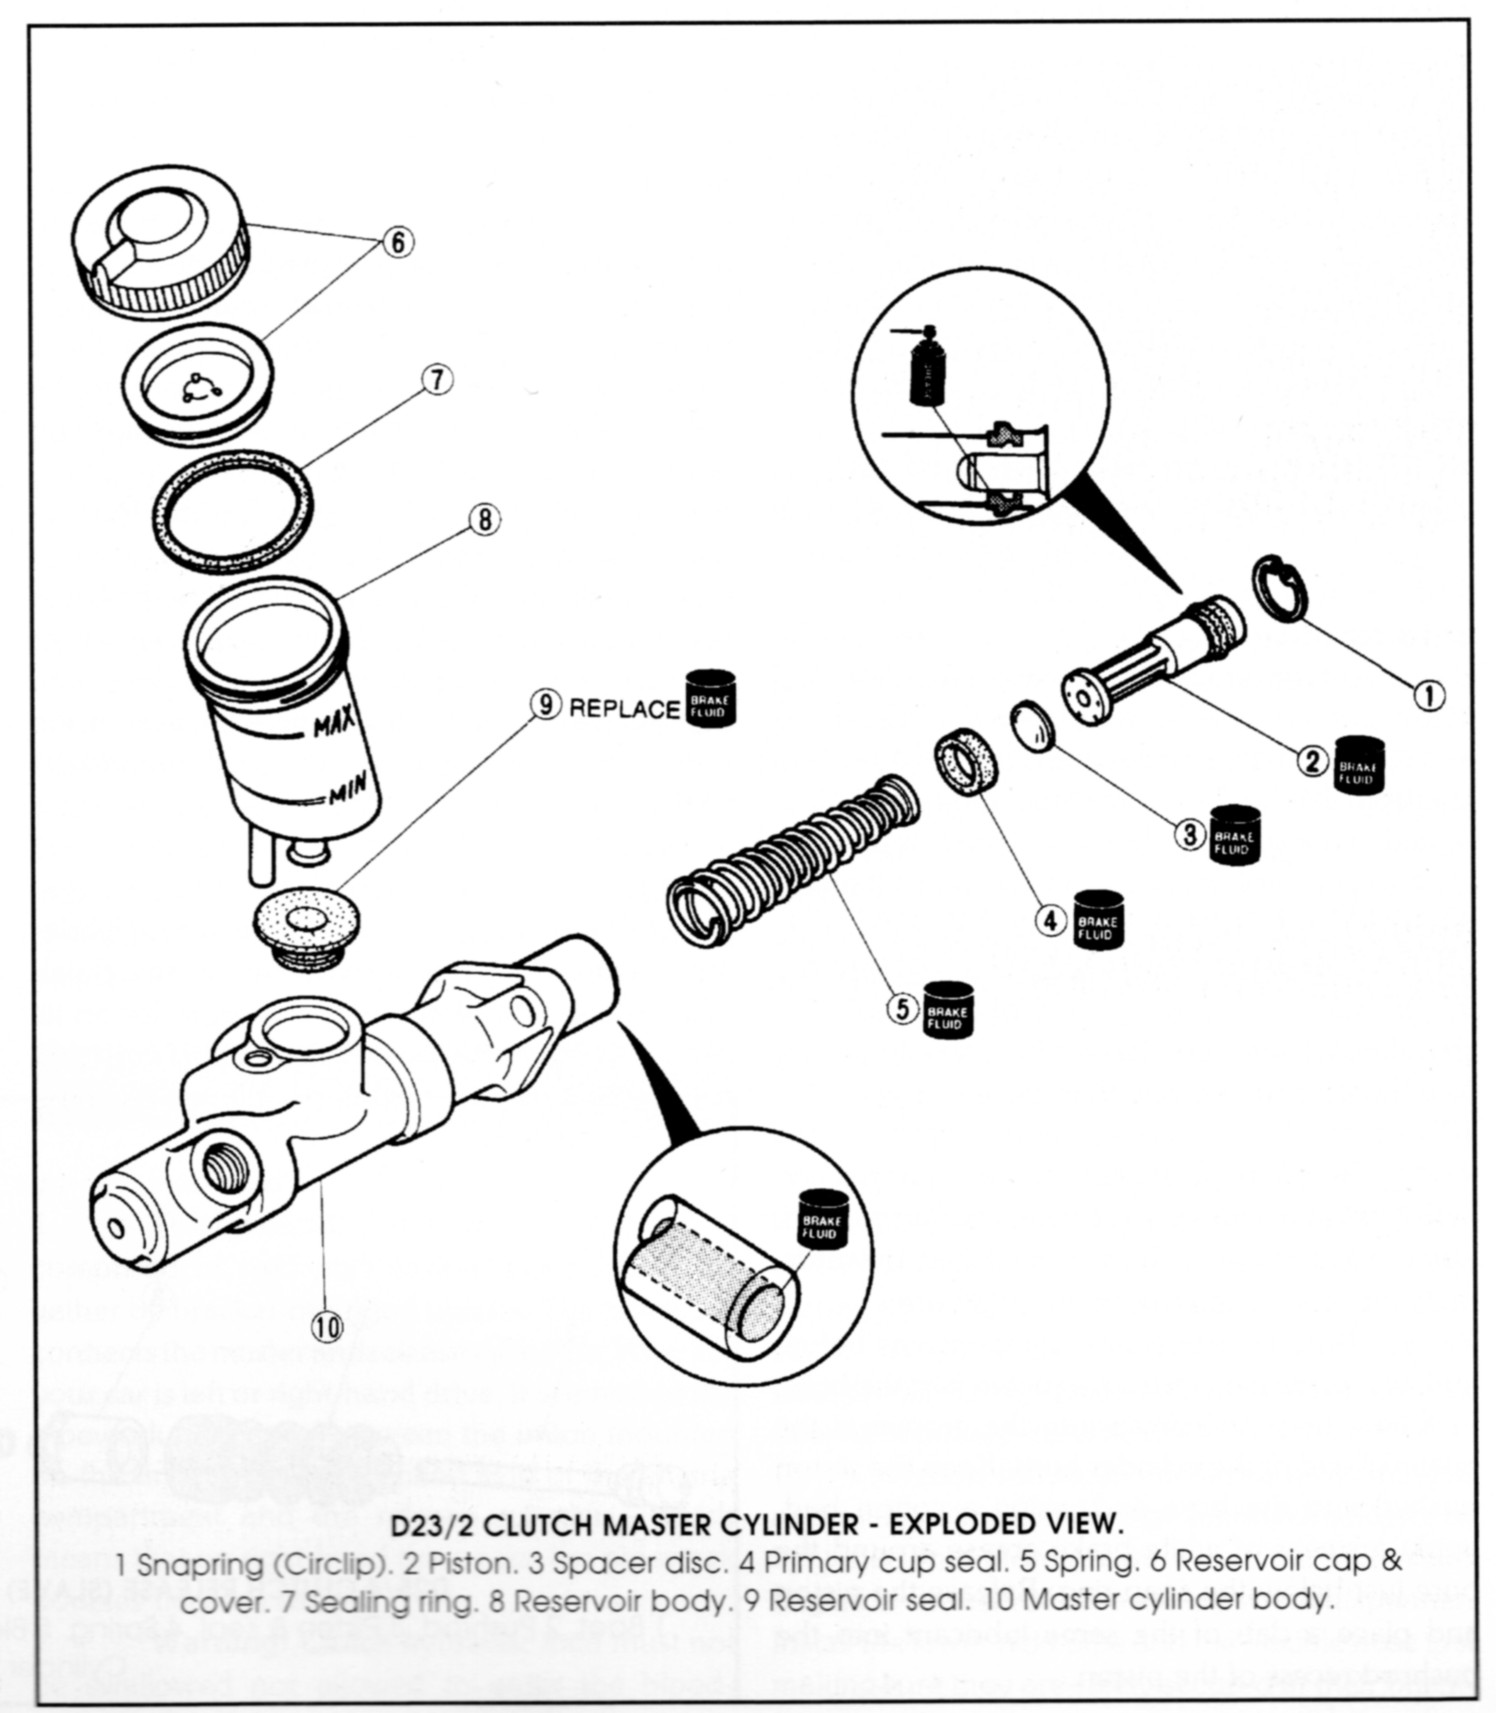 Miata Clutch Diagram Schematic Diagram